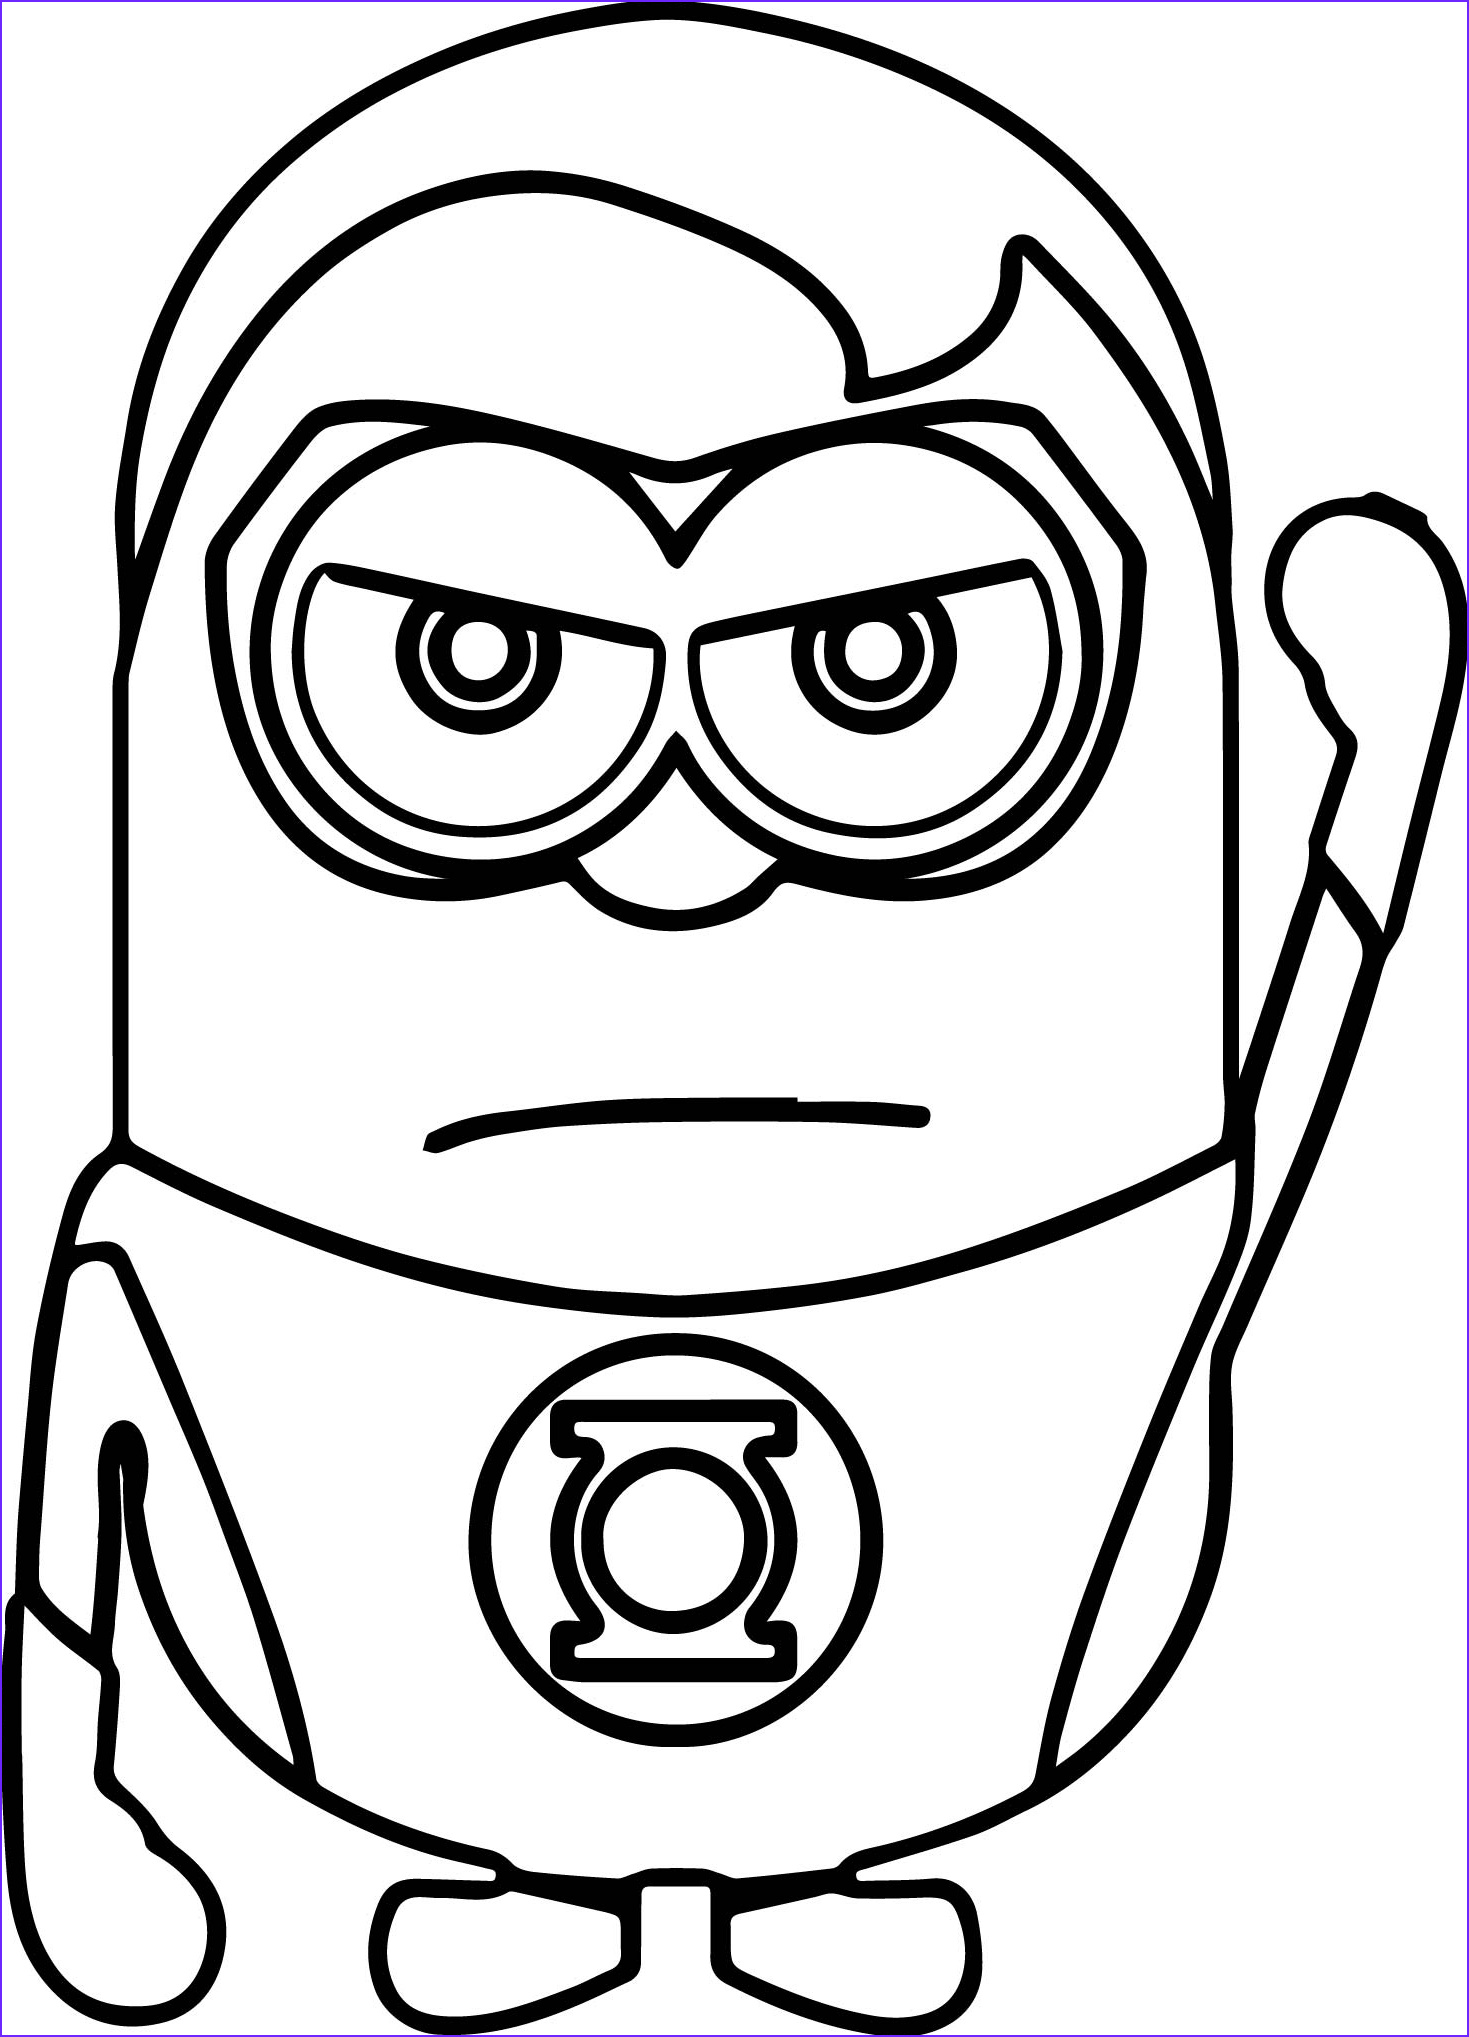 Minions Coloring Page Best Of Photos 33 Cute Minion Coloring Pages Cute Minion Cinema Coloring